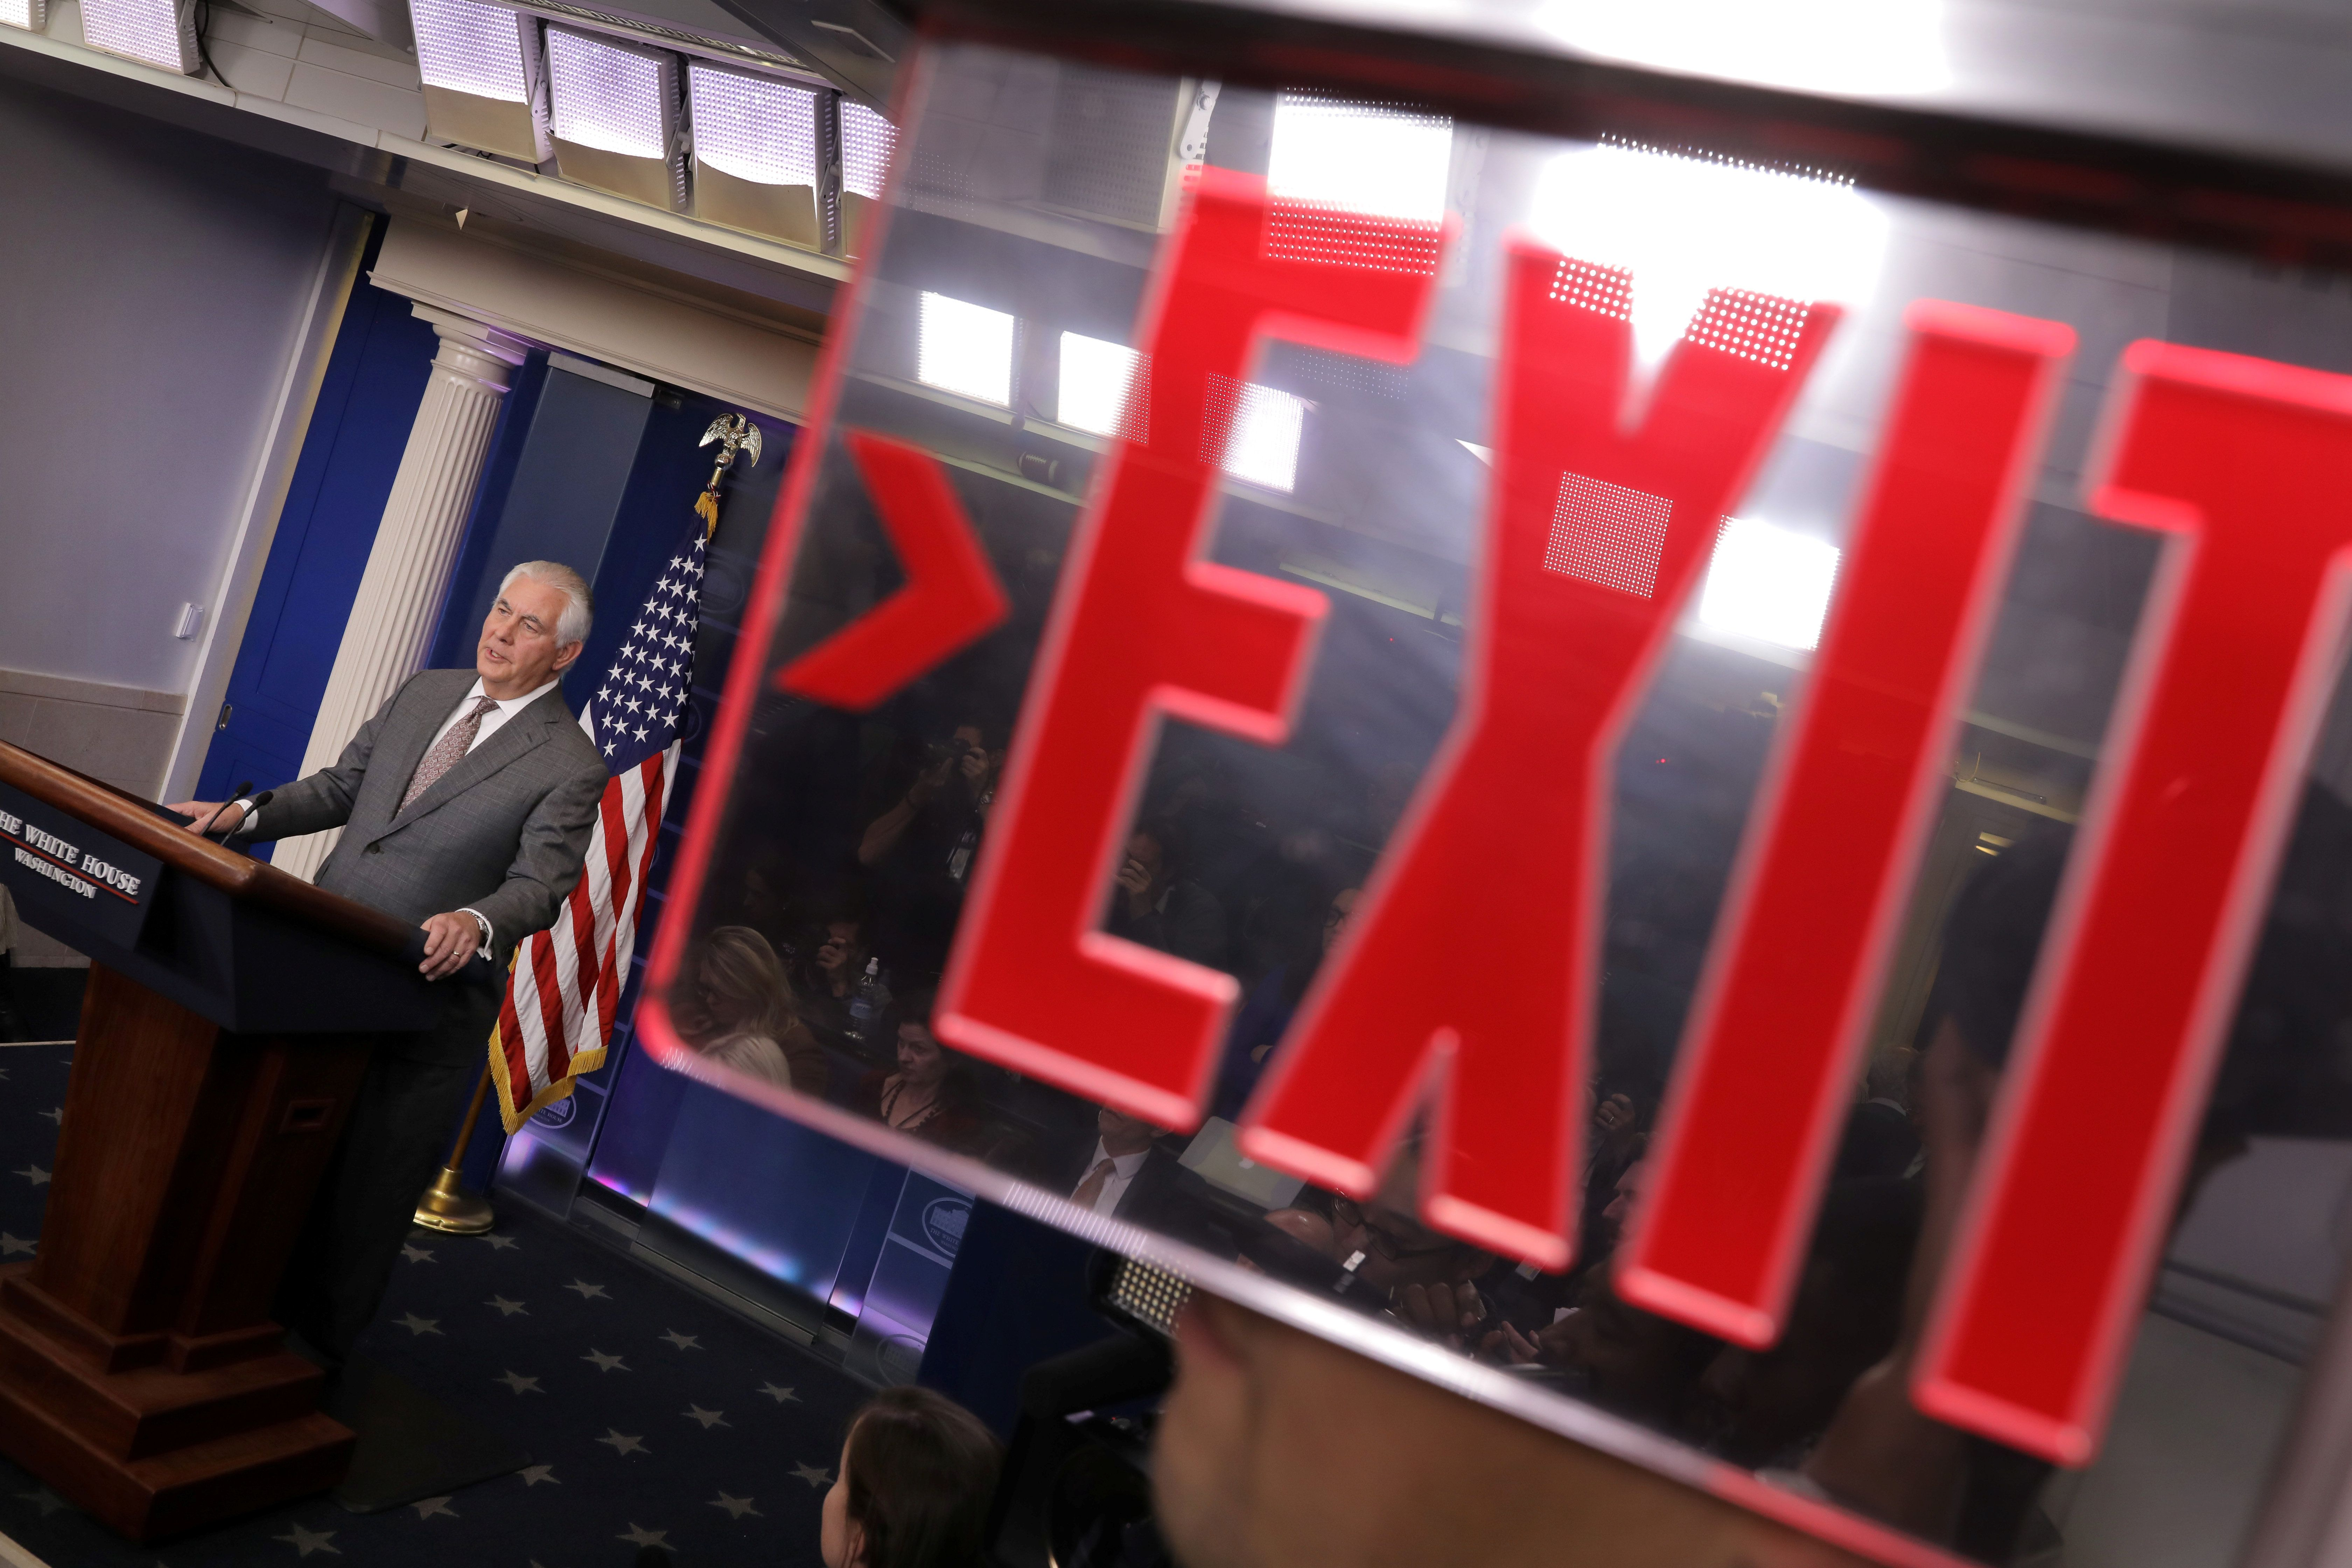 U.S. Secretary of State Rex Tillerson answers questions during the daily briefing at the White House in Washington, DC, U.S. November 20, 2017. REUTERS/Carlos Barria